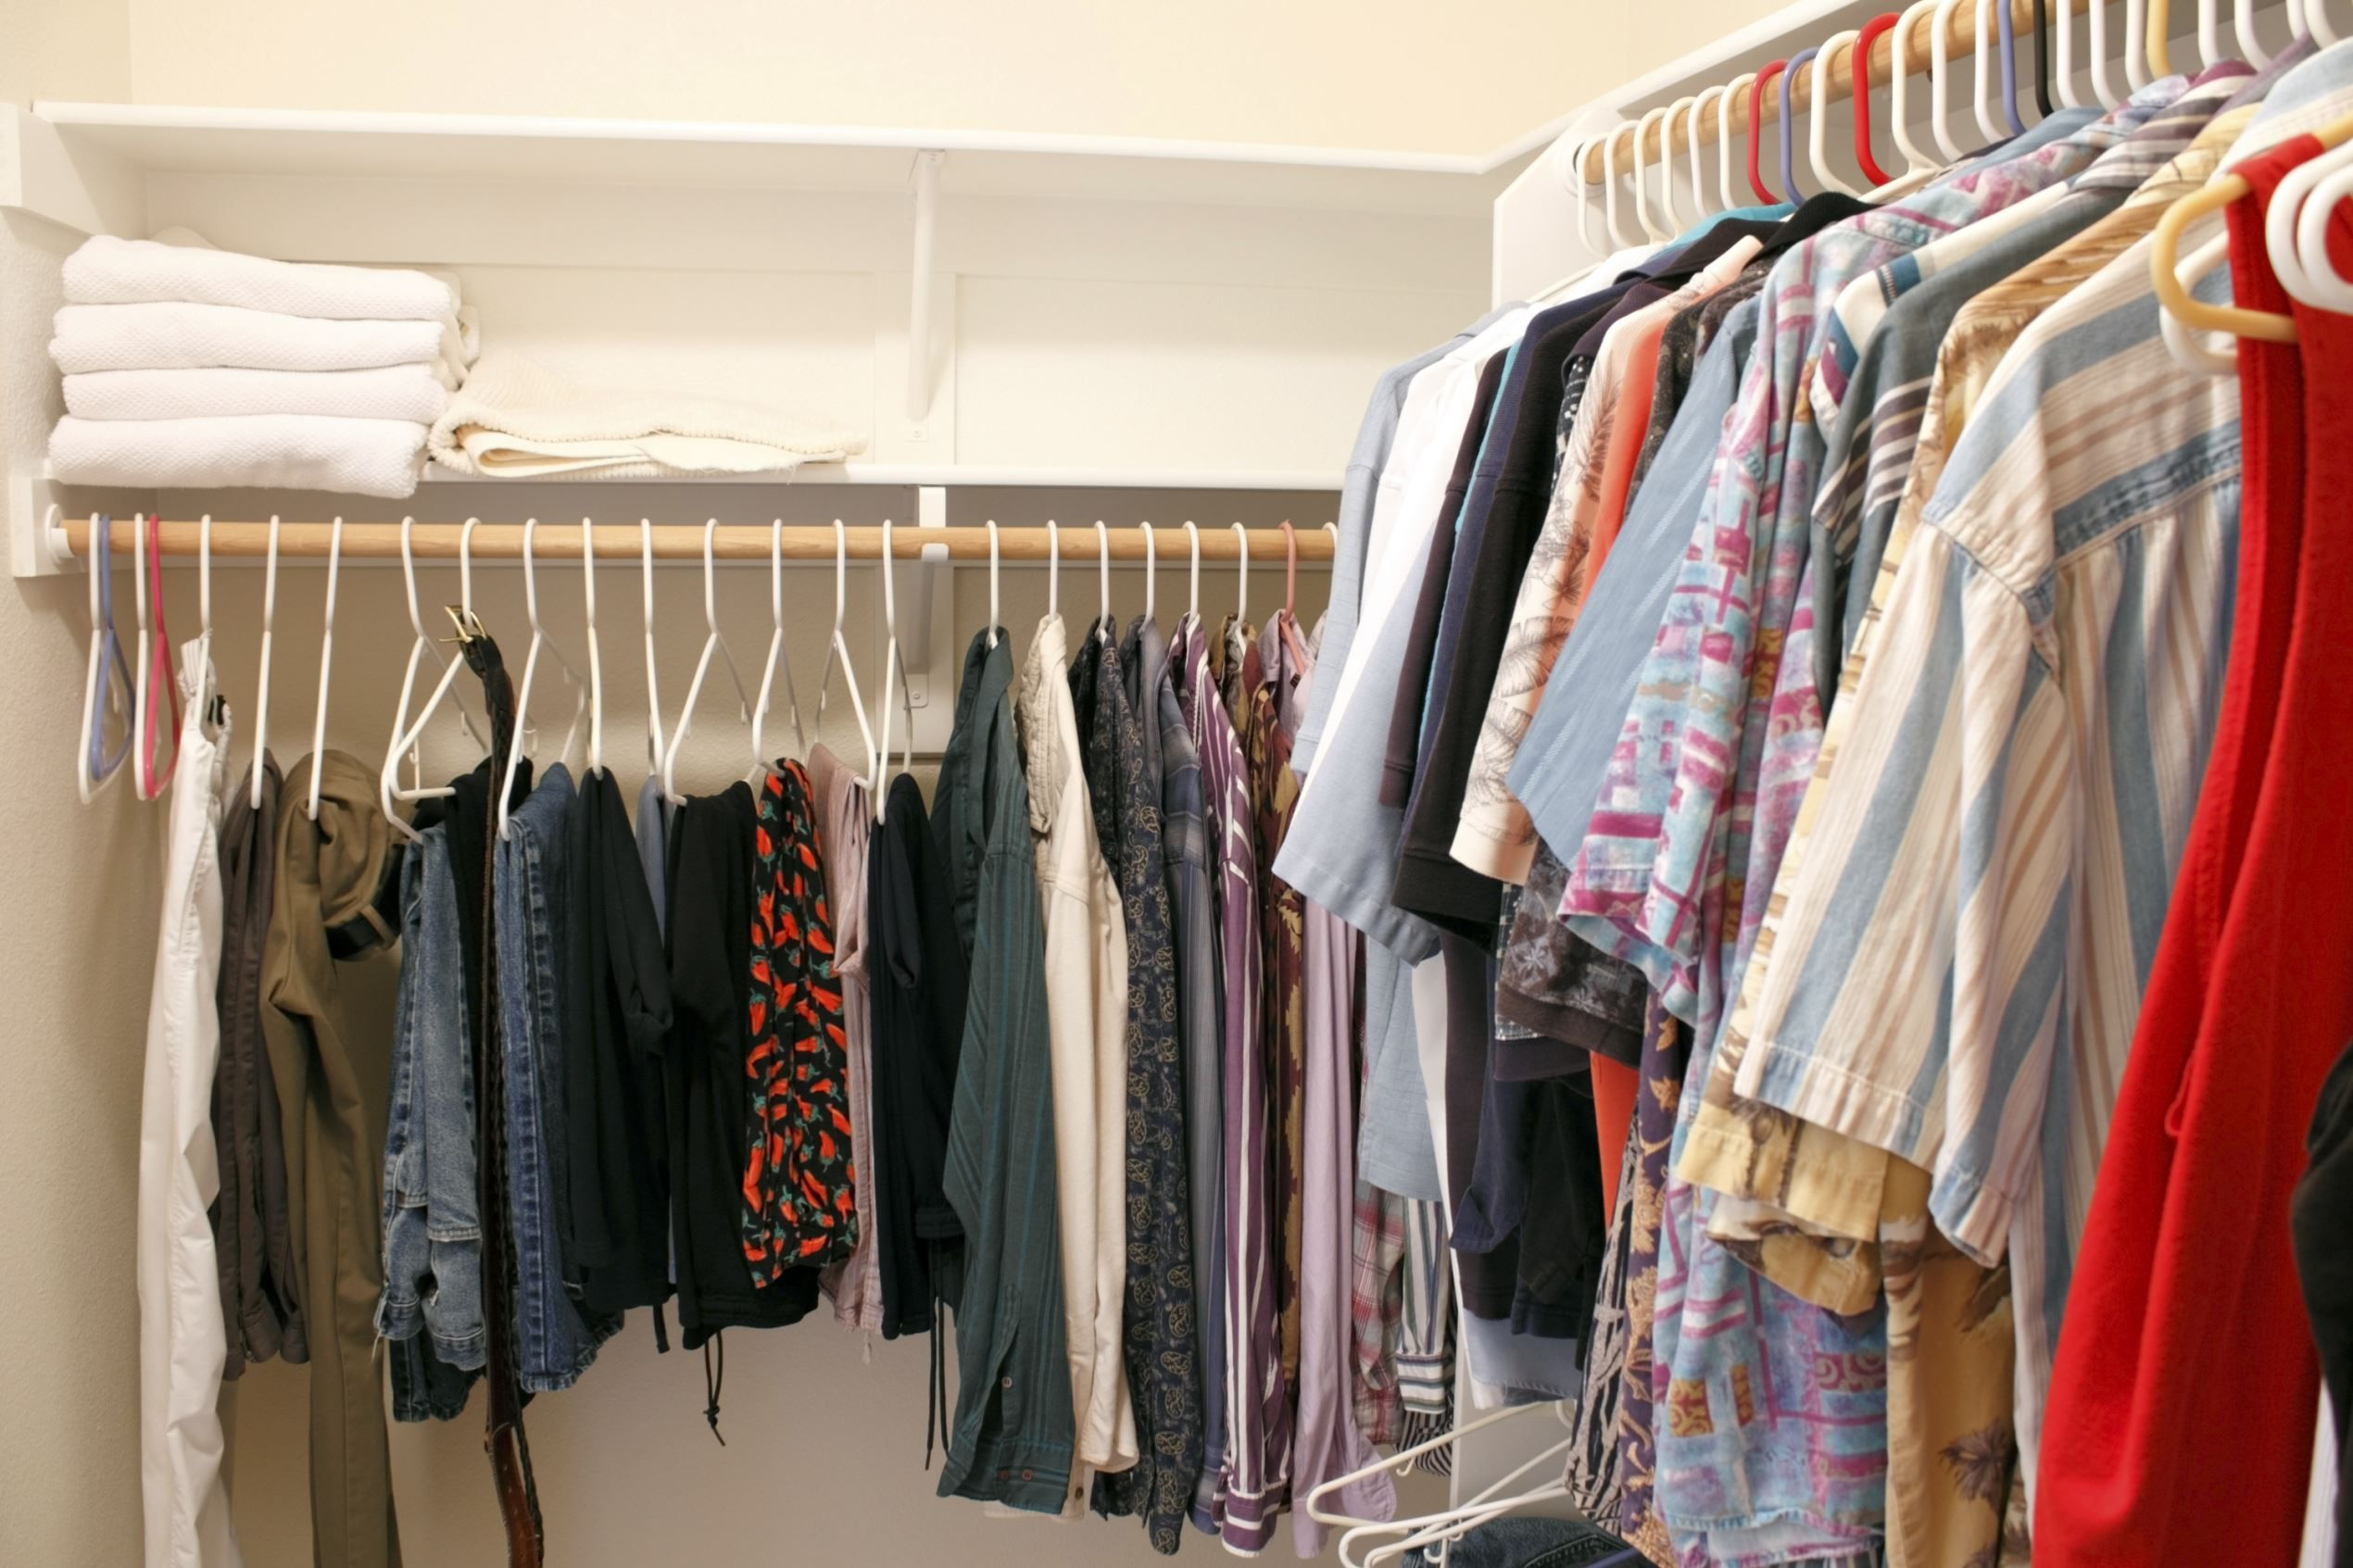 Genial 7 Easy Ways To Make More Space In Your Closet, No Renovations Required